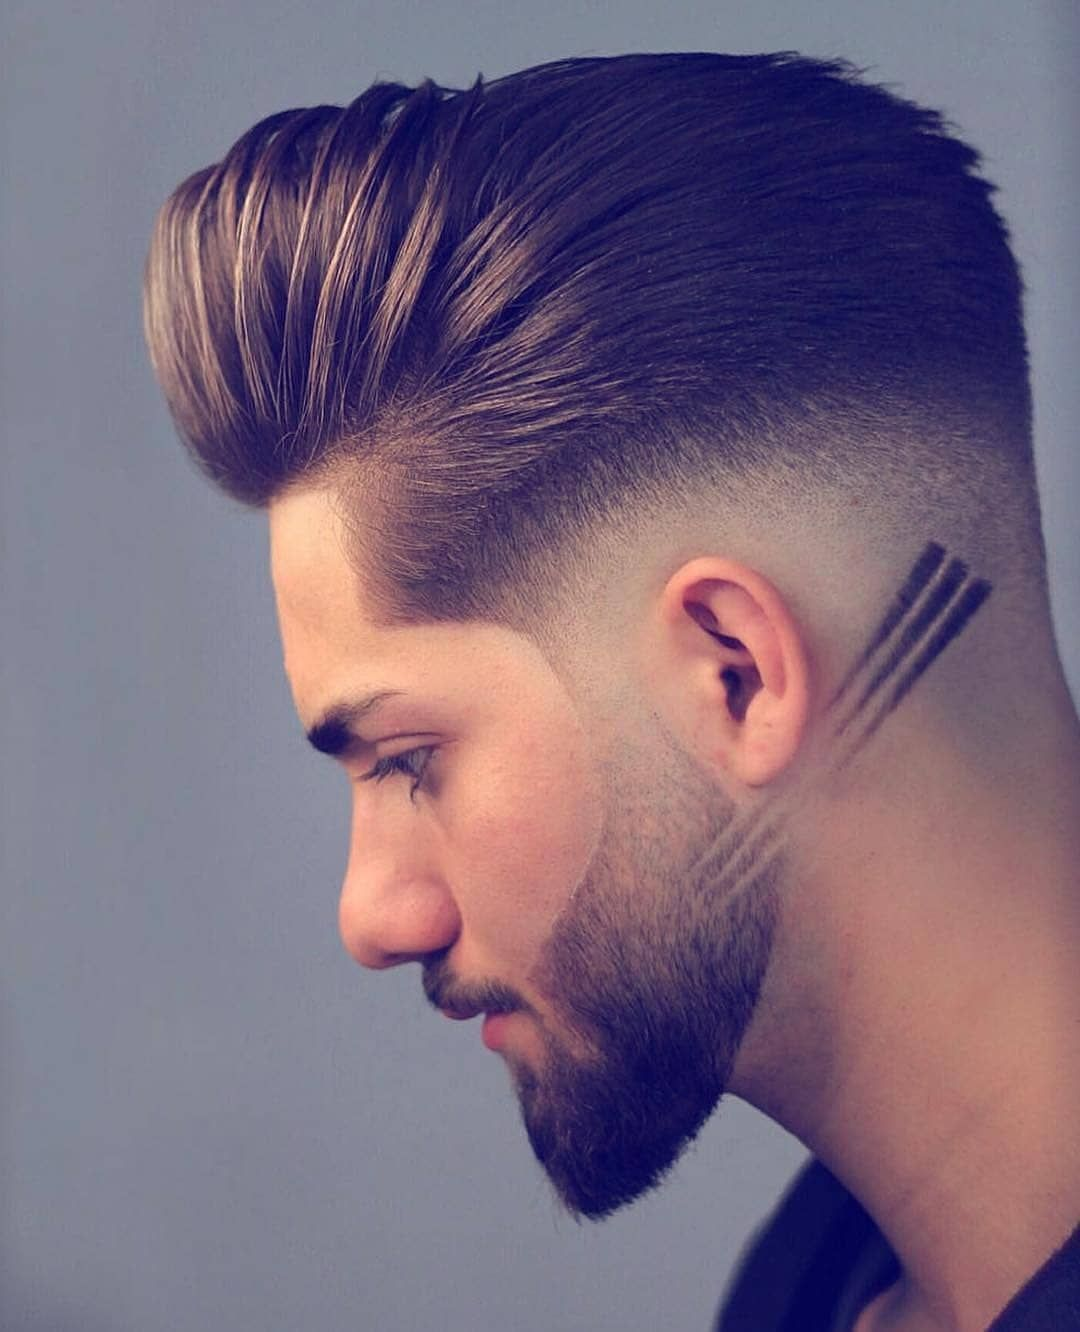 New The 10 Best Fashion Today With Pictures Fashion Gents Hair Style Haircuts For Men Men Haircut Styles